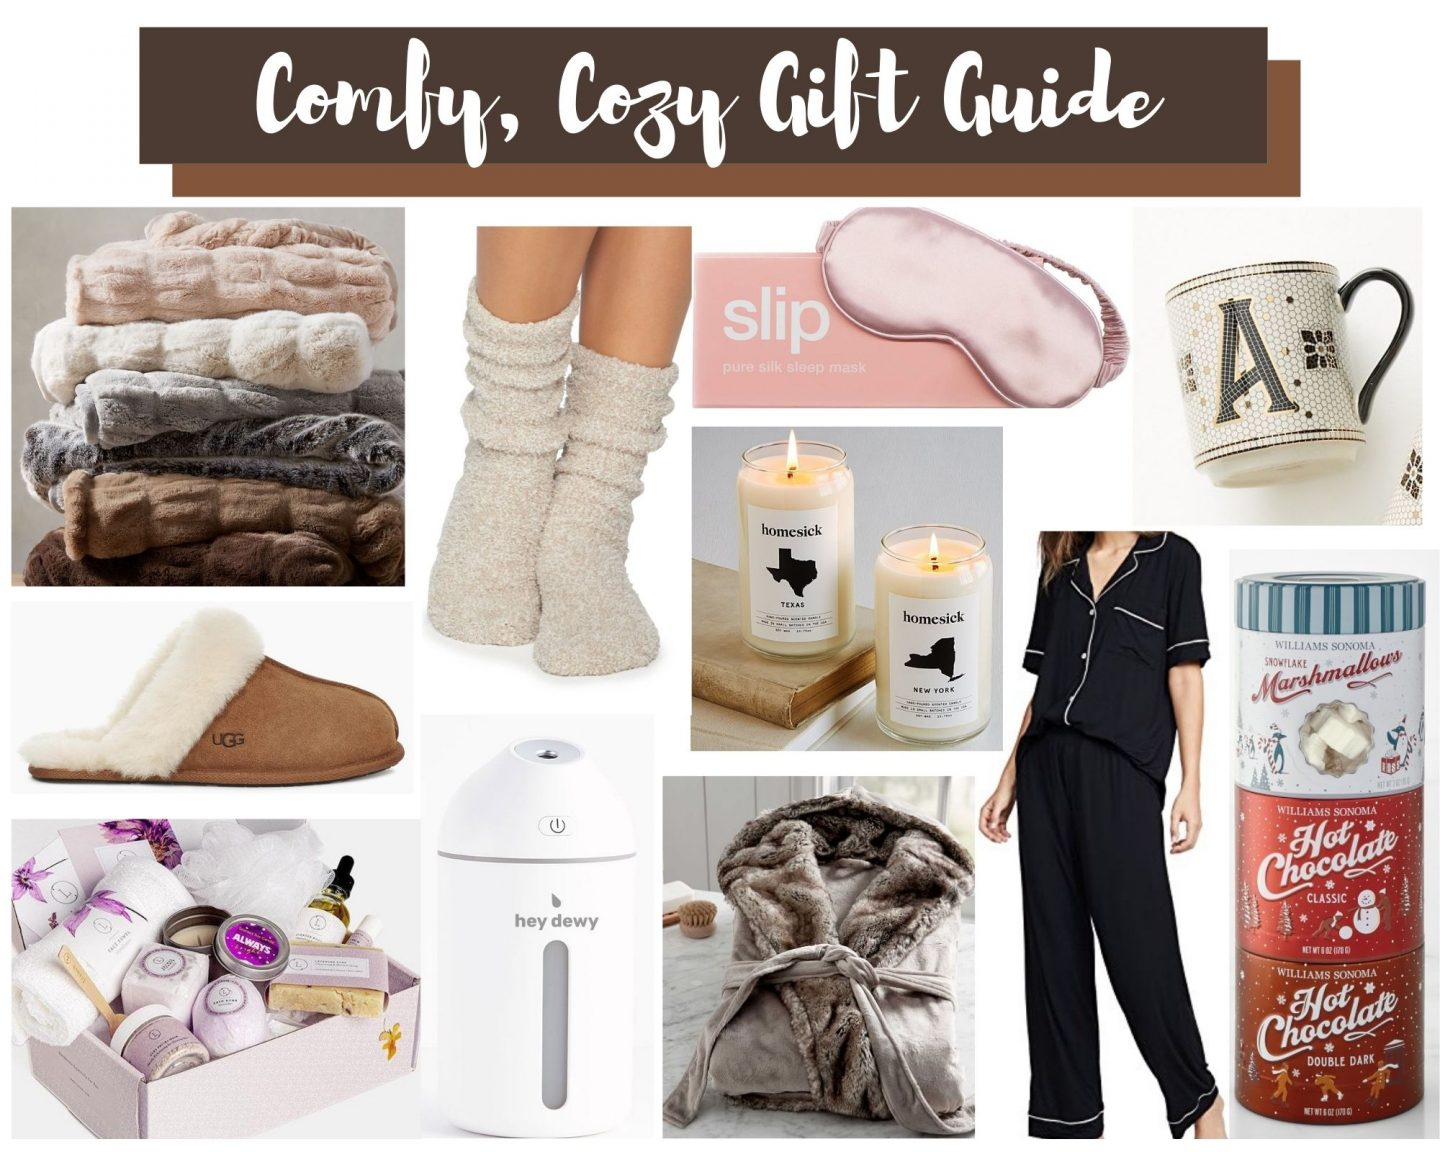 A Comfy, Cozy Gift Guide!